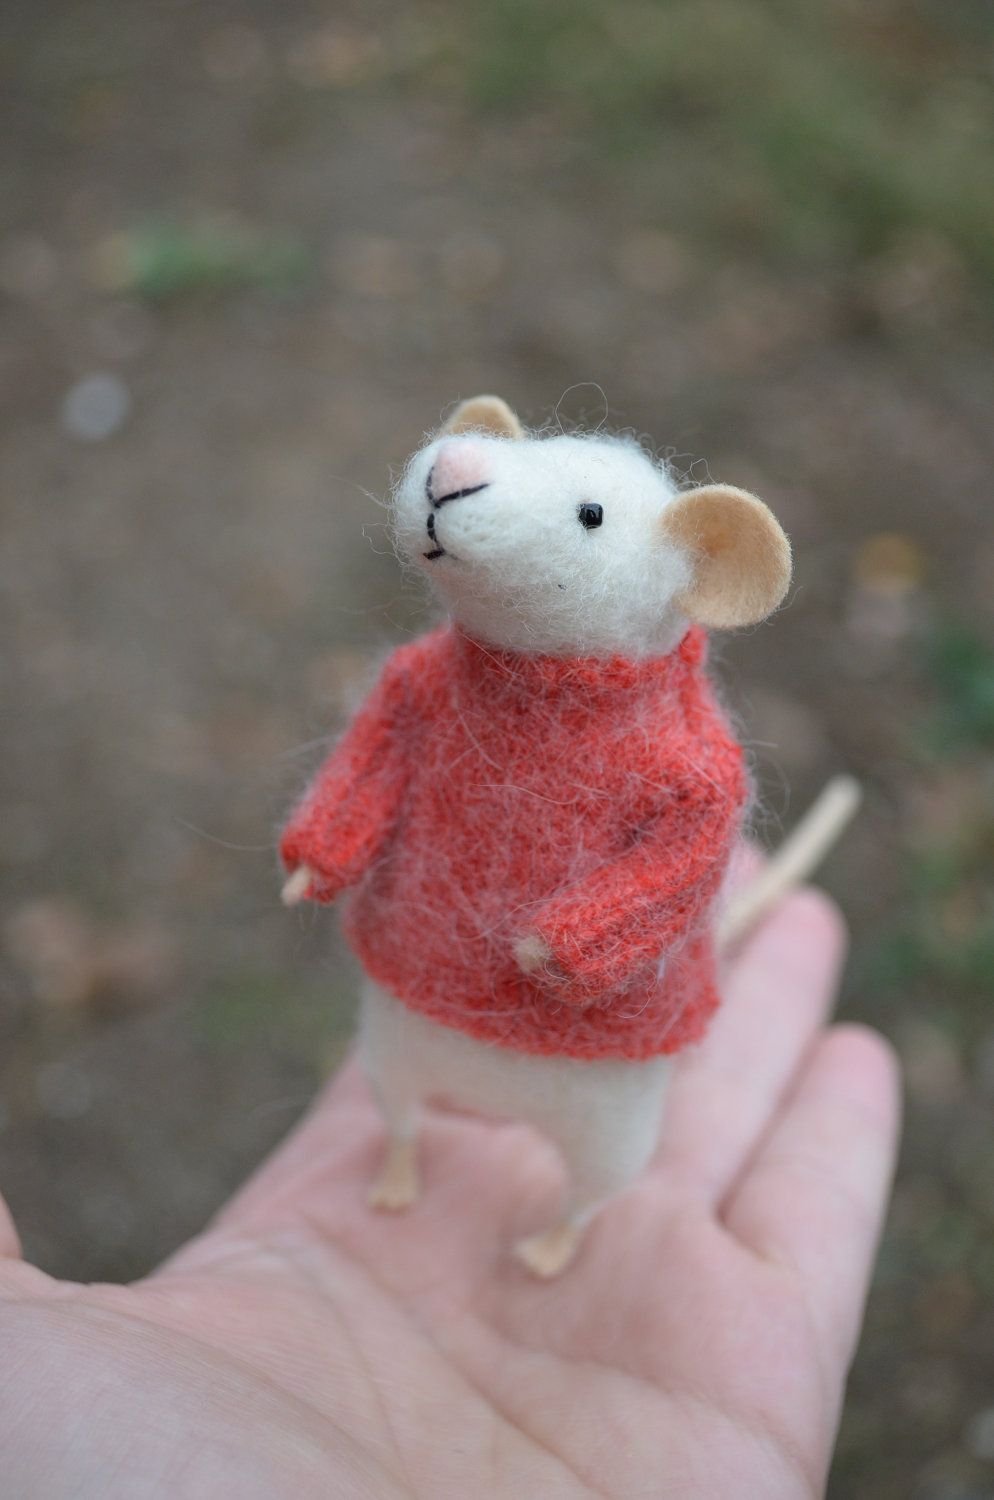 The Little Mouse With Recycled Swaeter Unique Needle Felted Ornament Animal Felting Dreams Made To Order Felt Crafts Mouse Crafts Needle Felted Ornaments